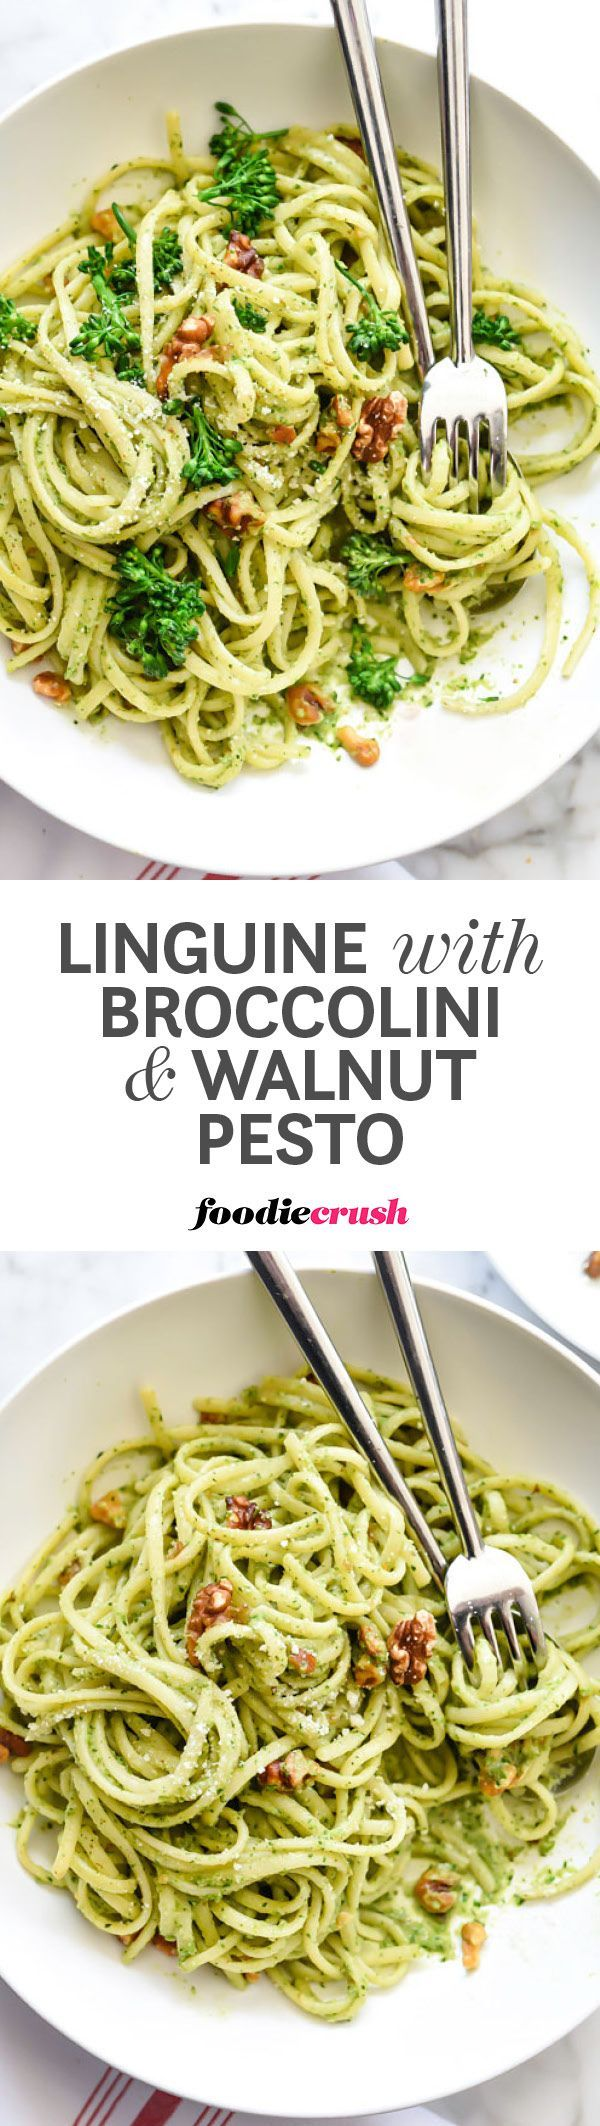 Tender broccolini's bitter bite makes a flavorful pesto when paired with garlic, Parmesan cheese and toasted walnuts for a super easy smooth pasta sauce | http://foodiecrush.com #pasta #linguine #pesto